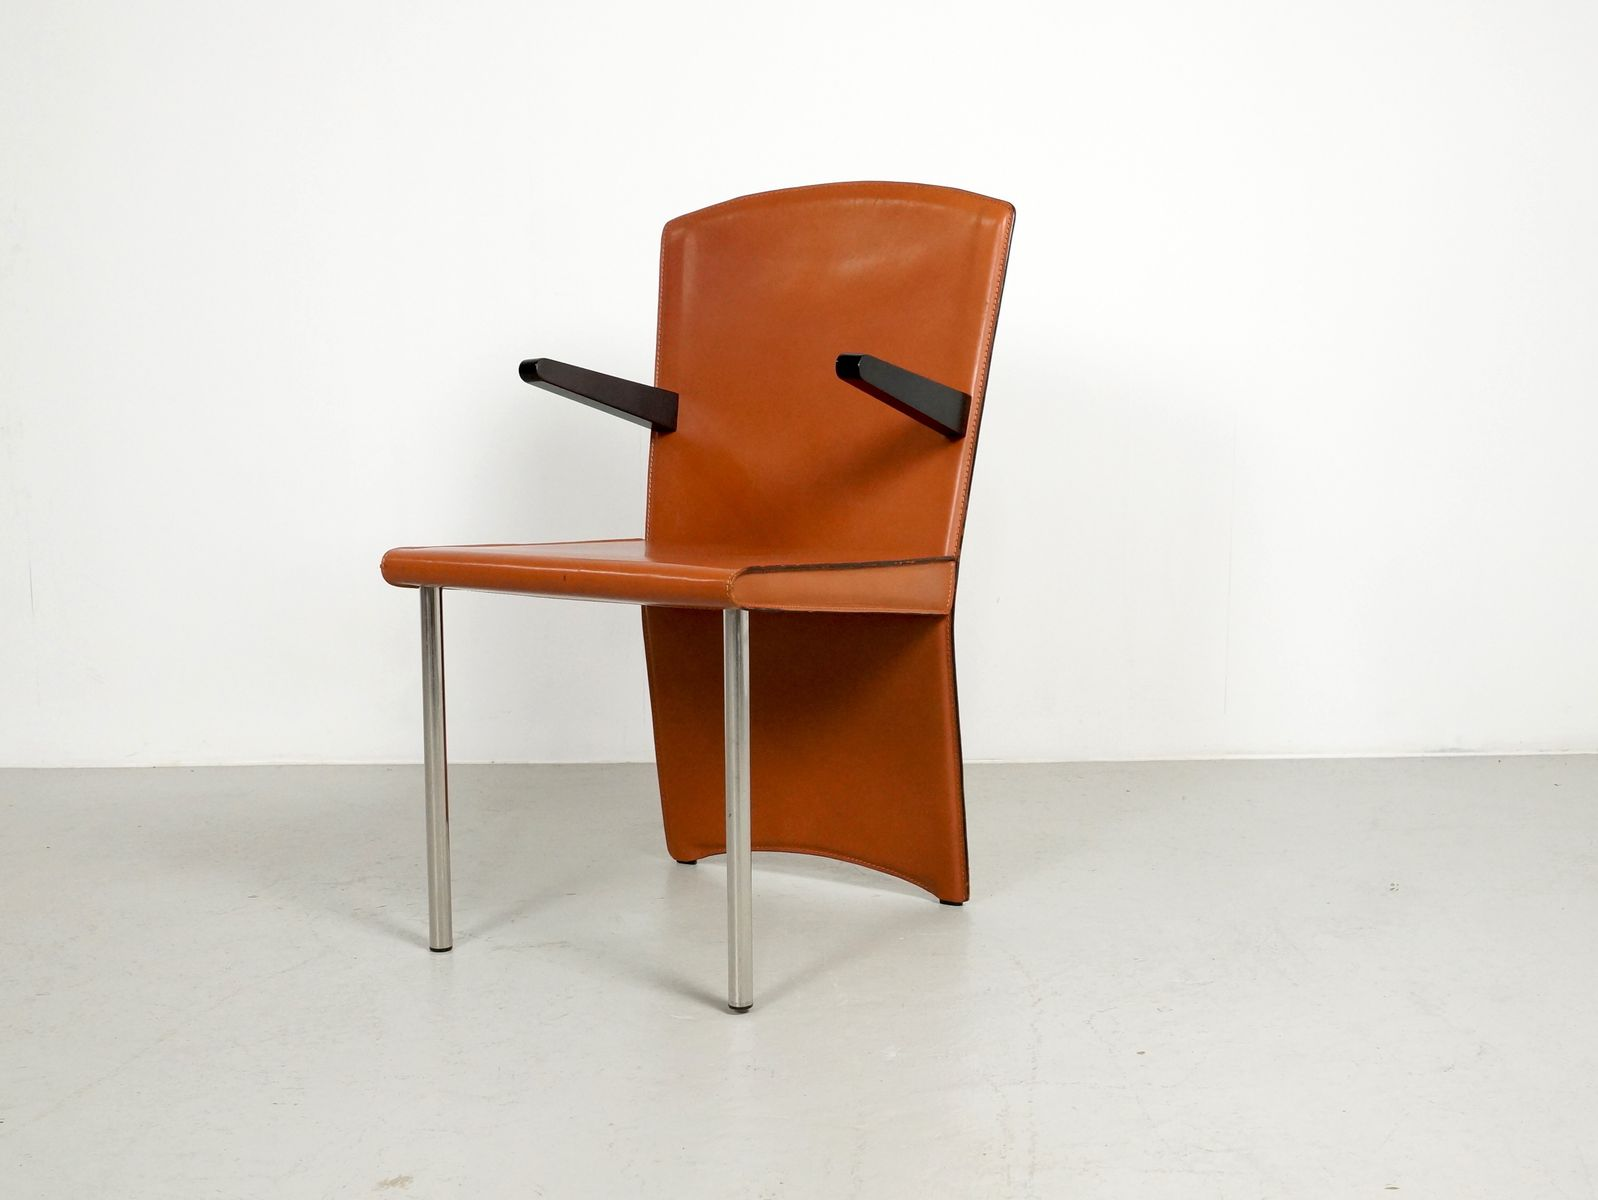 Vintage Cognac Leather Dining Chair By Andrea Branzi For